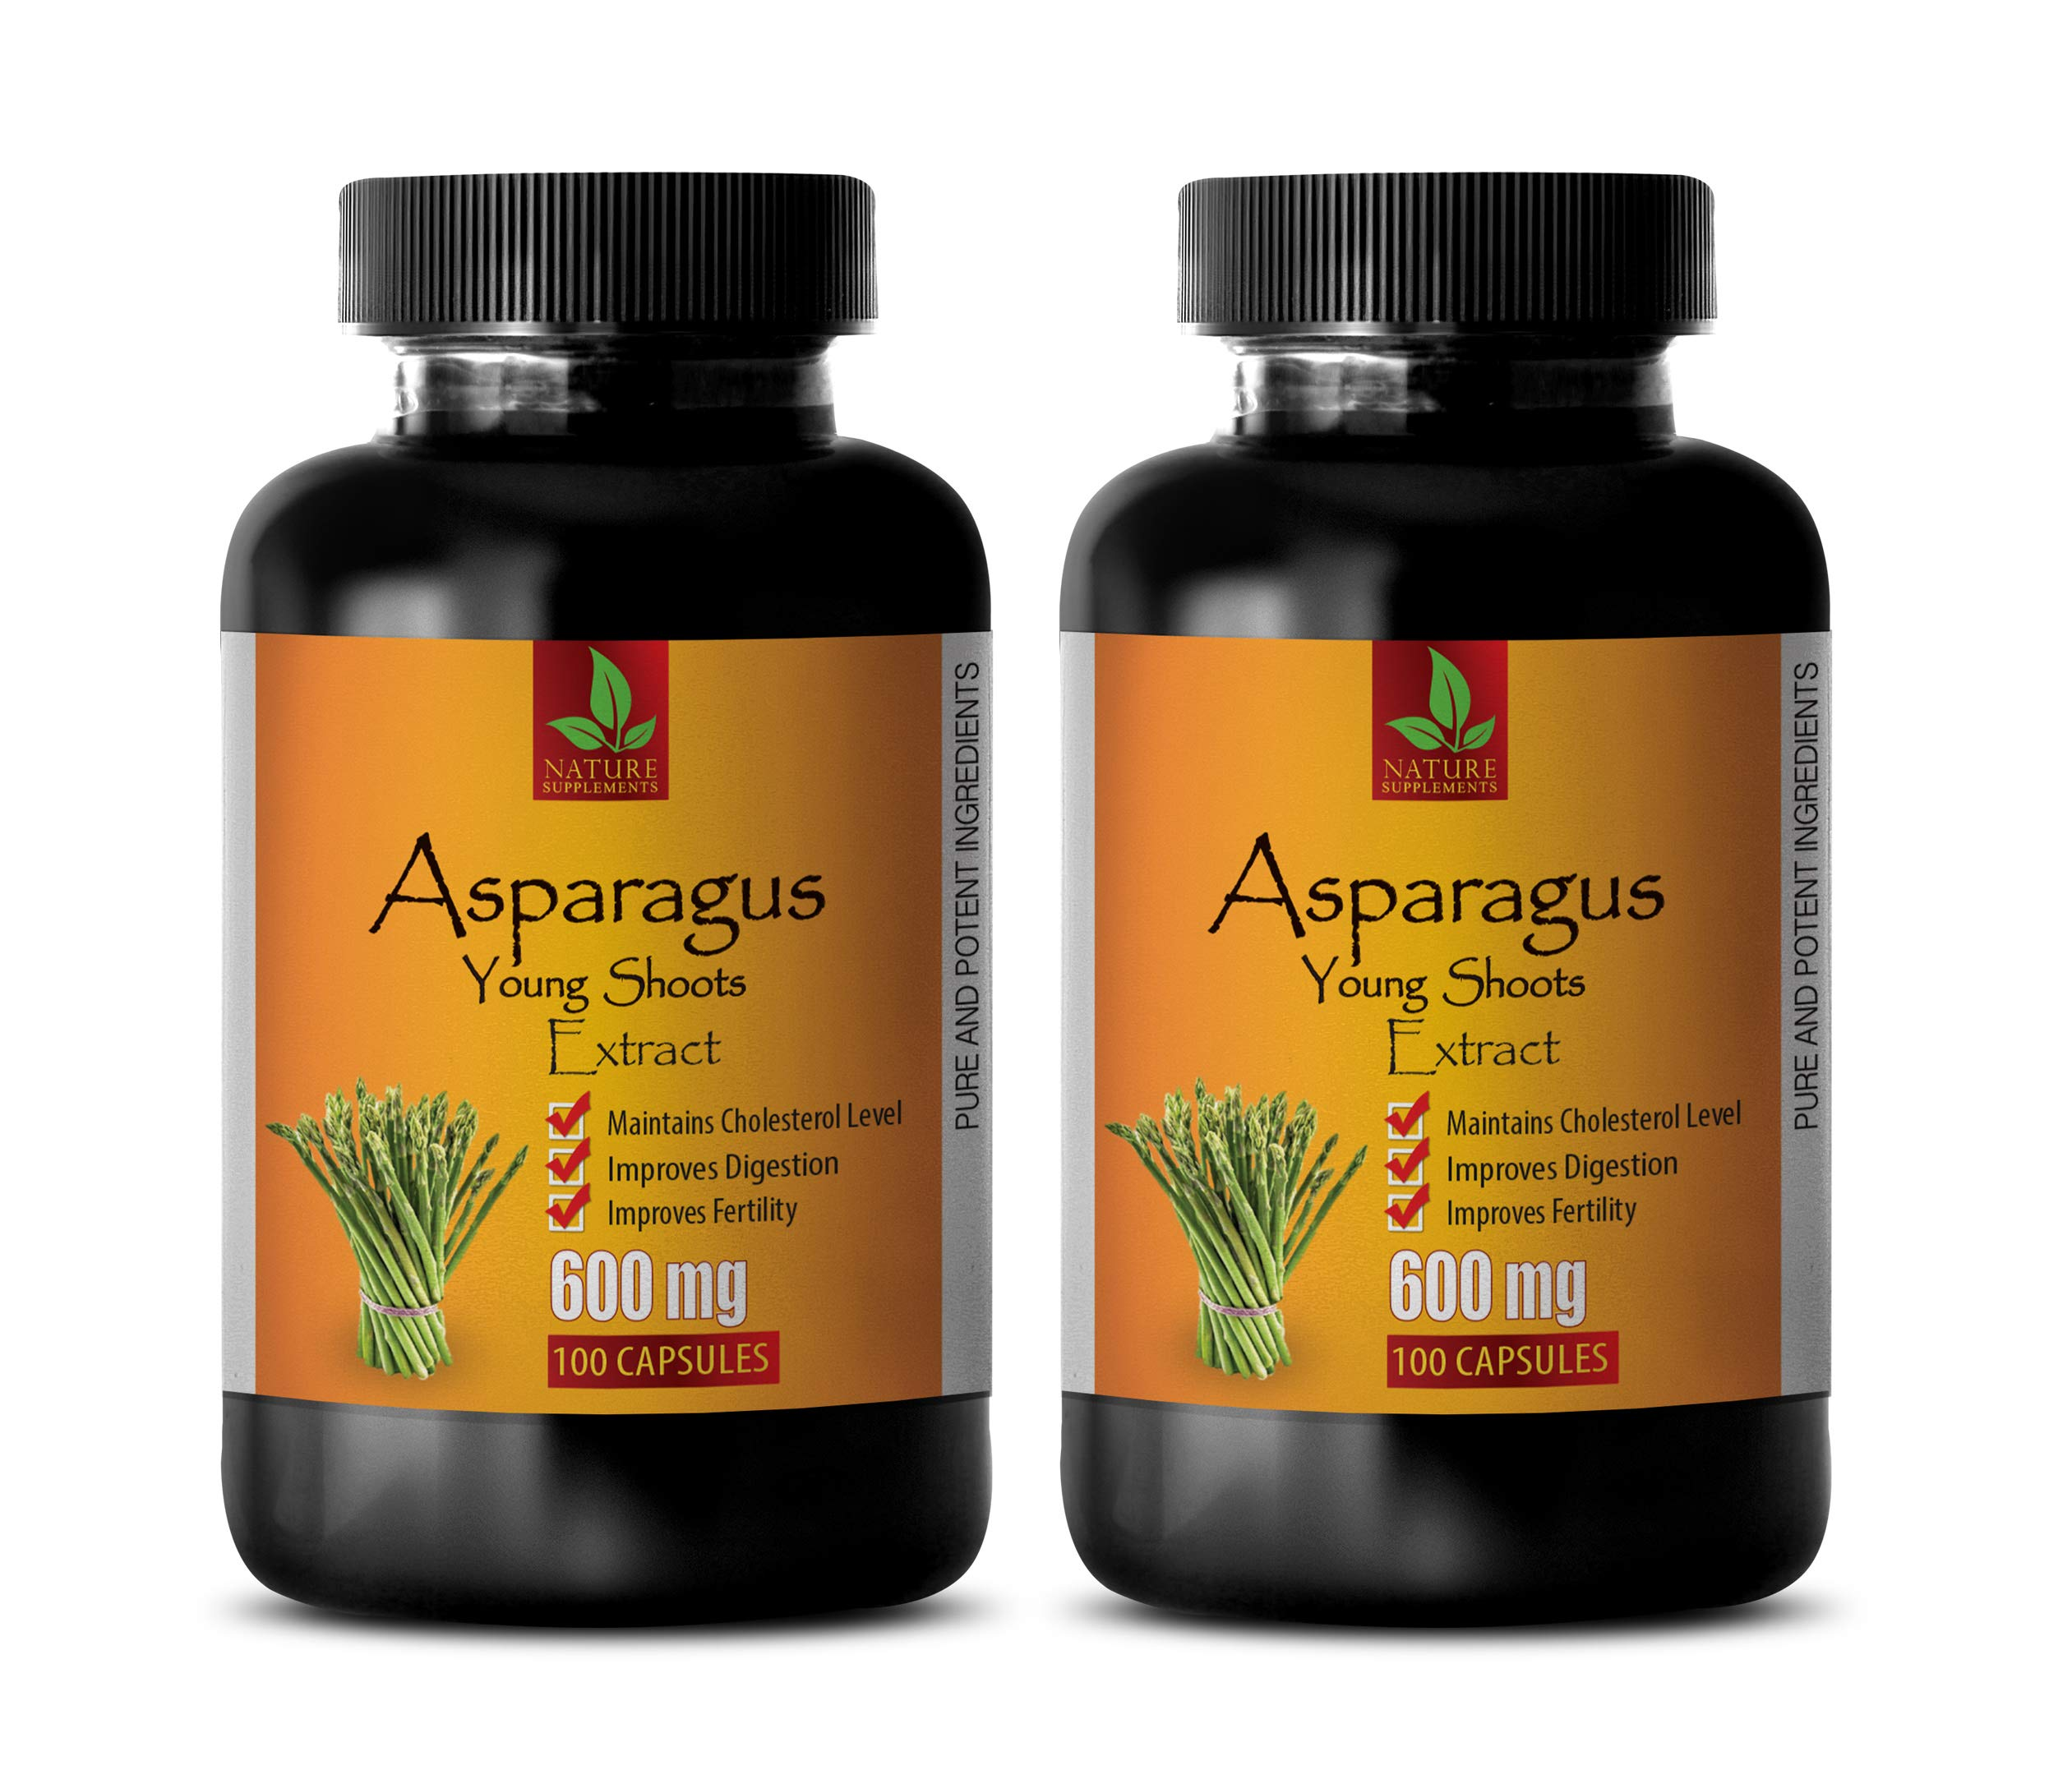 Heart Health Supplements for Women - Asparagus Young Shoots Extract 600 MG - Pure and Potent Ingredients - antioxidant Weight Loss - 2 Bottles 200 Capsules